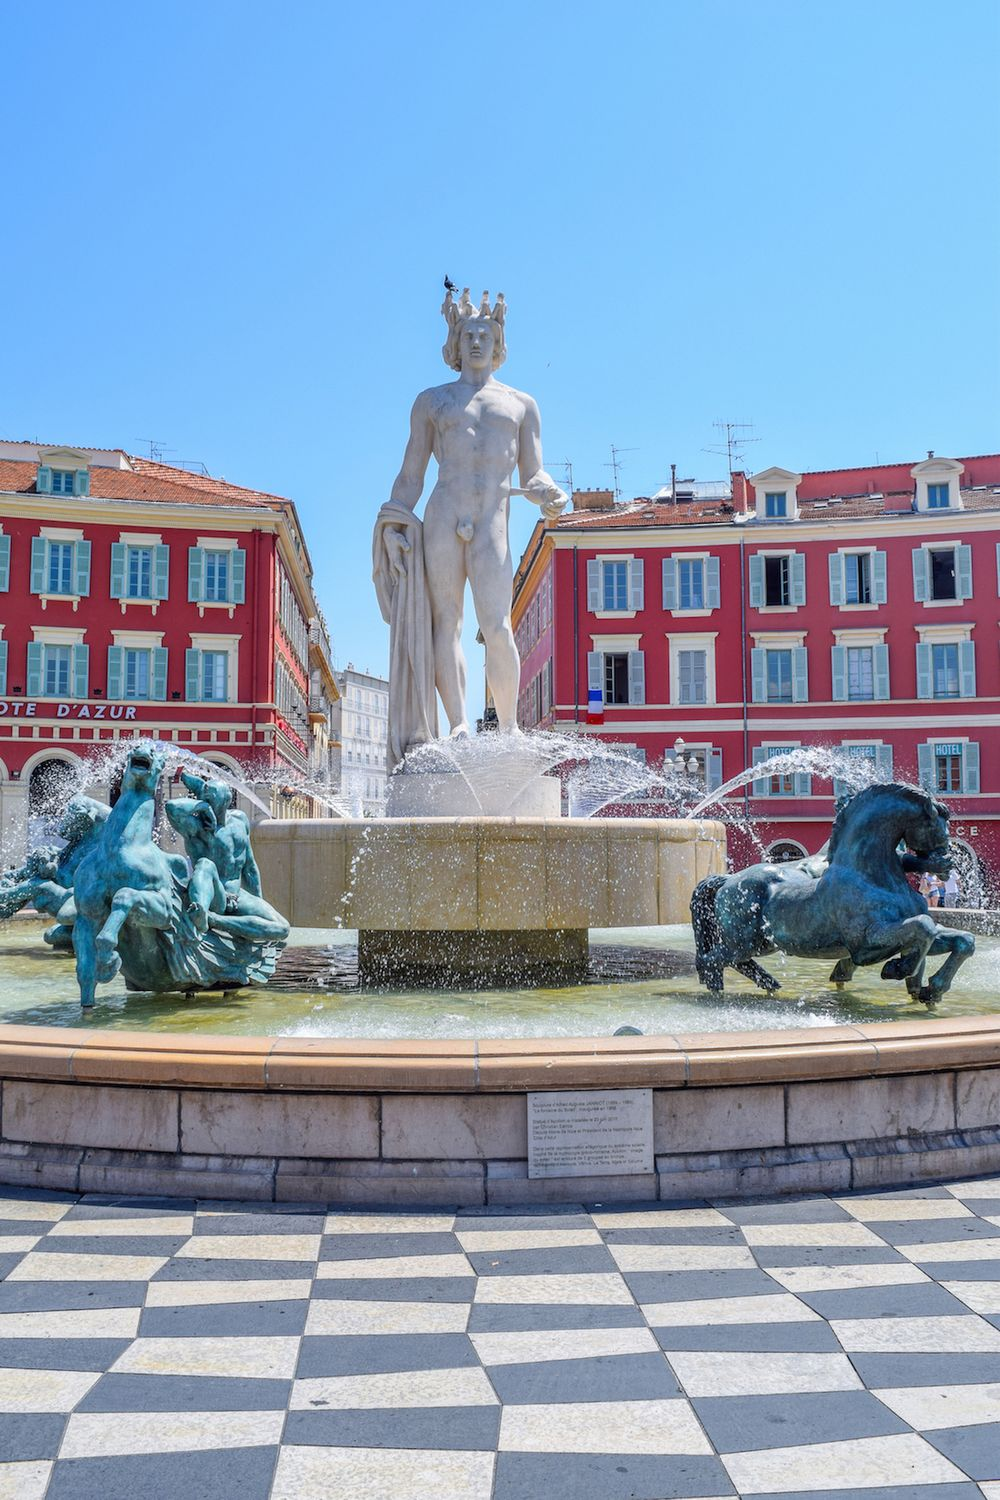 Statue in Nice Vielle Ville, France: Nice, France Travel Guide